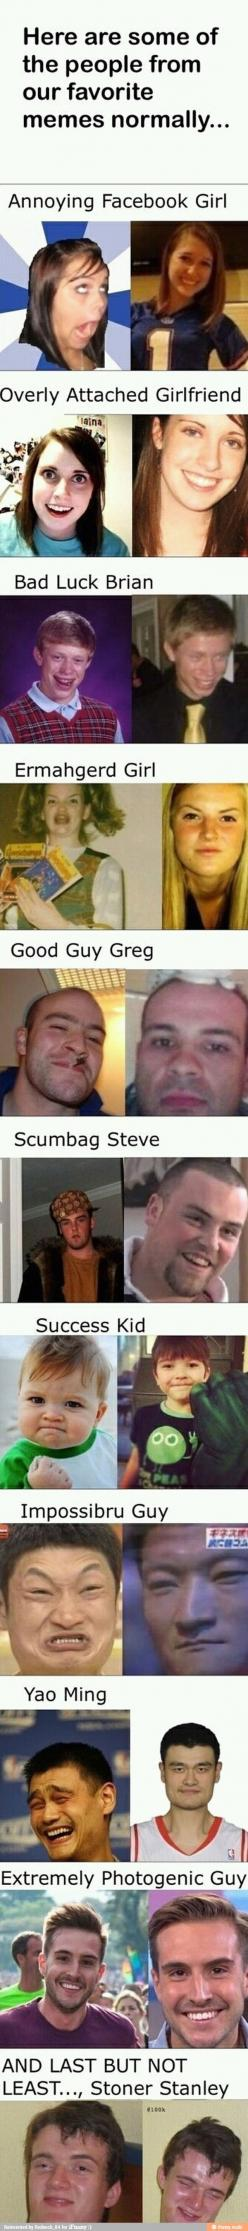 Meme People vs. Their Normal Selves. I love how extremely photogenic guy looks the same in both pictures.: Funny Girl Memes Lmfao, Meme People, Funny Memes Girls, Favorite Meme, Funny Stuff, Funny Guy Memes, Stoner Meme, No Meme, Photogenic Guy